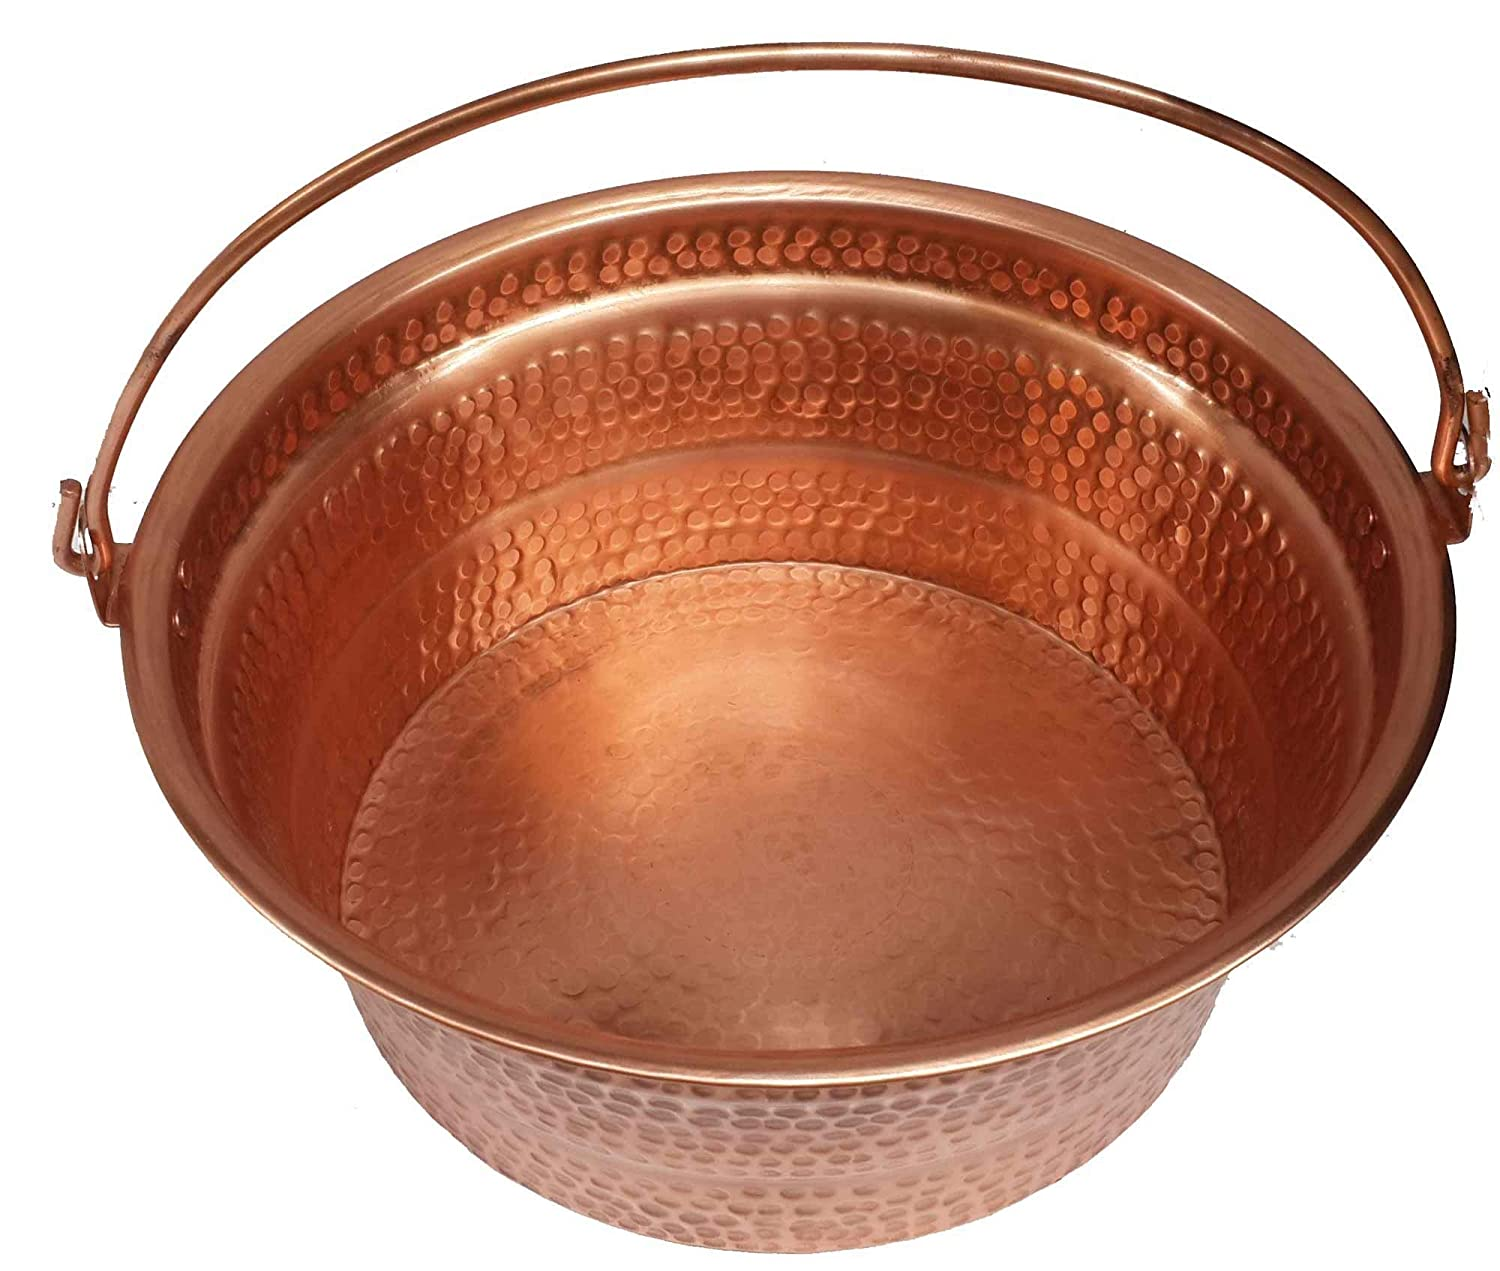 Egypt gift shops Traditional Shiny Bright Polished Finish Pure Natural Copper Garden Flowers Pots Petite Foot Rub Bucket Pedicure Massage Beauty Salon Mental Physical Health Skin Care Pan